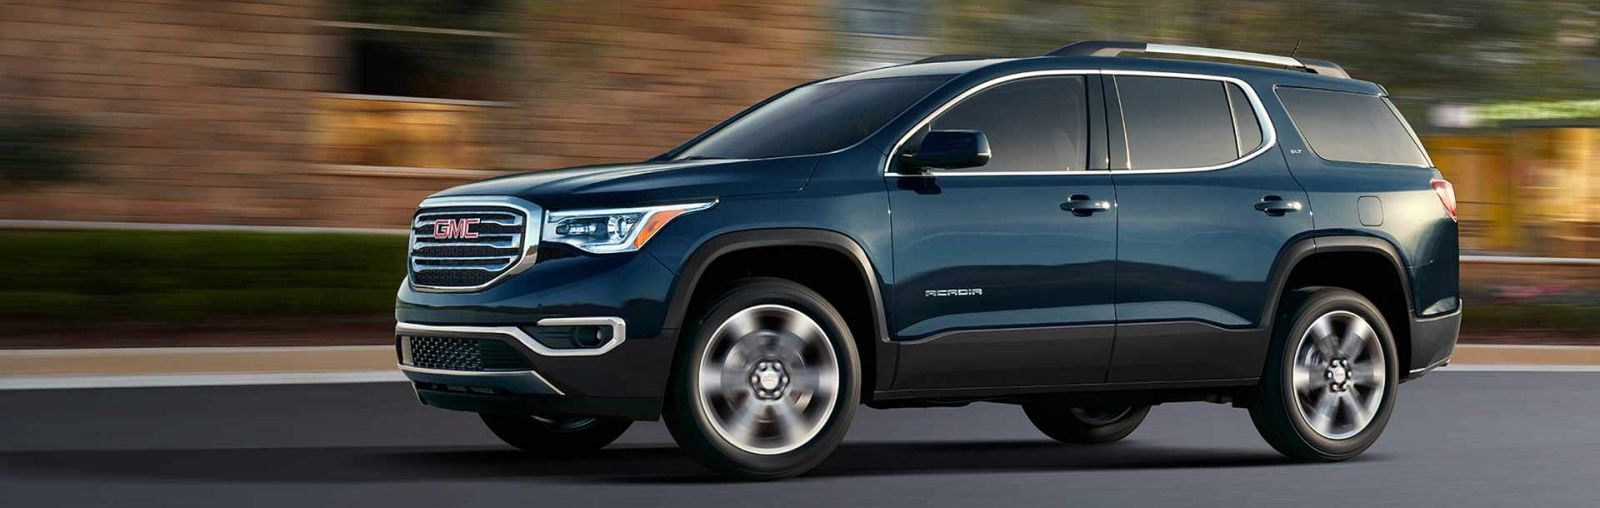 2017 GMC Acadia for Sale near Boardman, OH